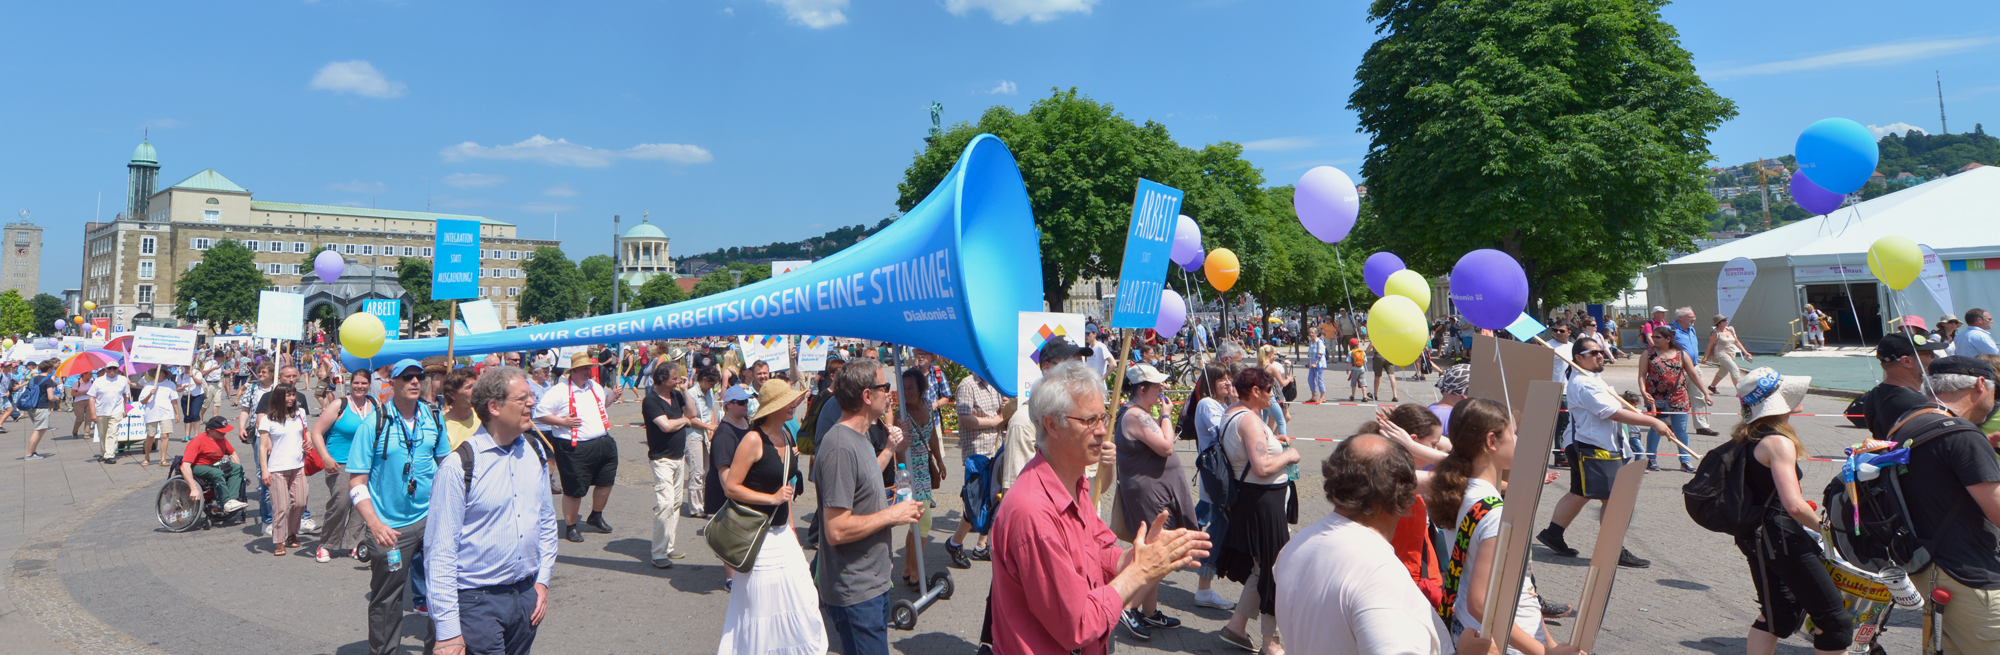 Header_kirchentag.jpg